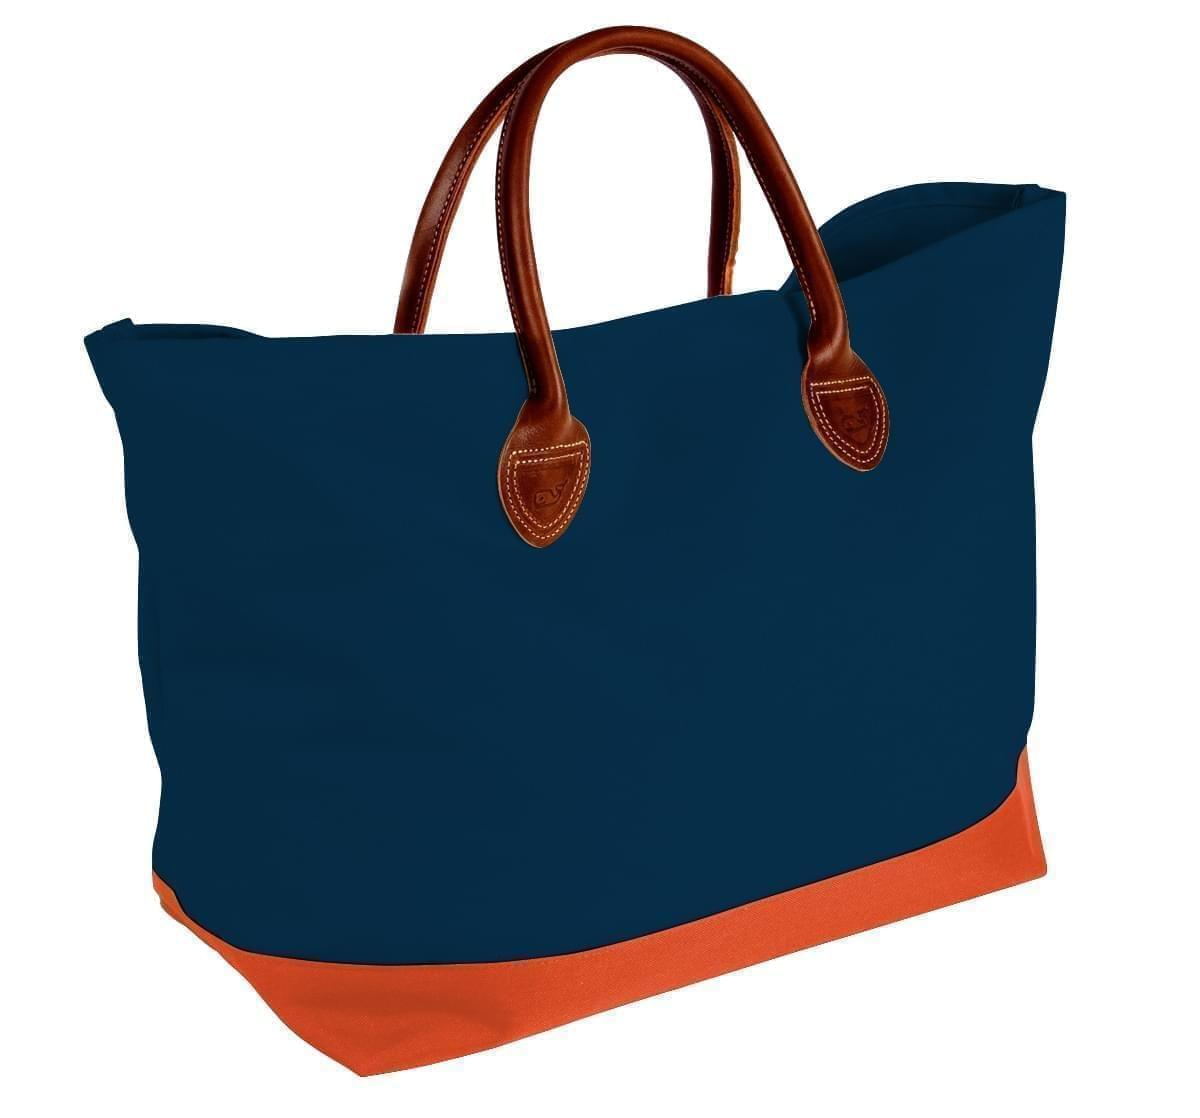 USA Made Canvas Leather Handle Totes, Navy-Orange, 10899-JC9